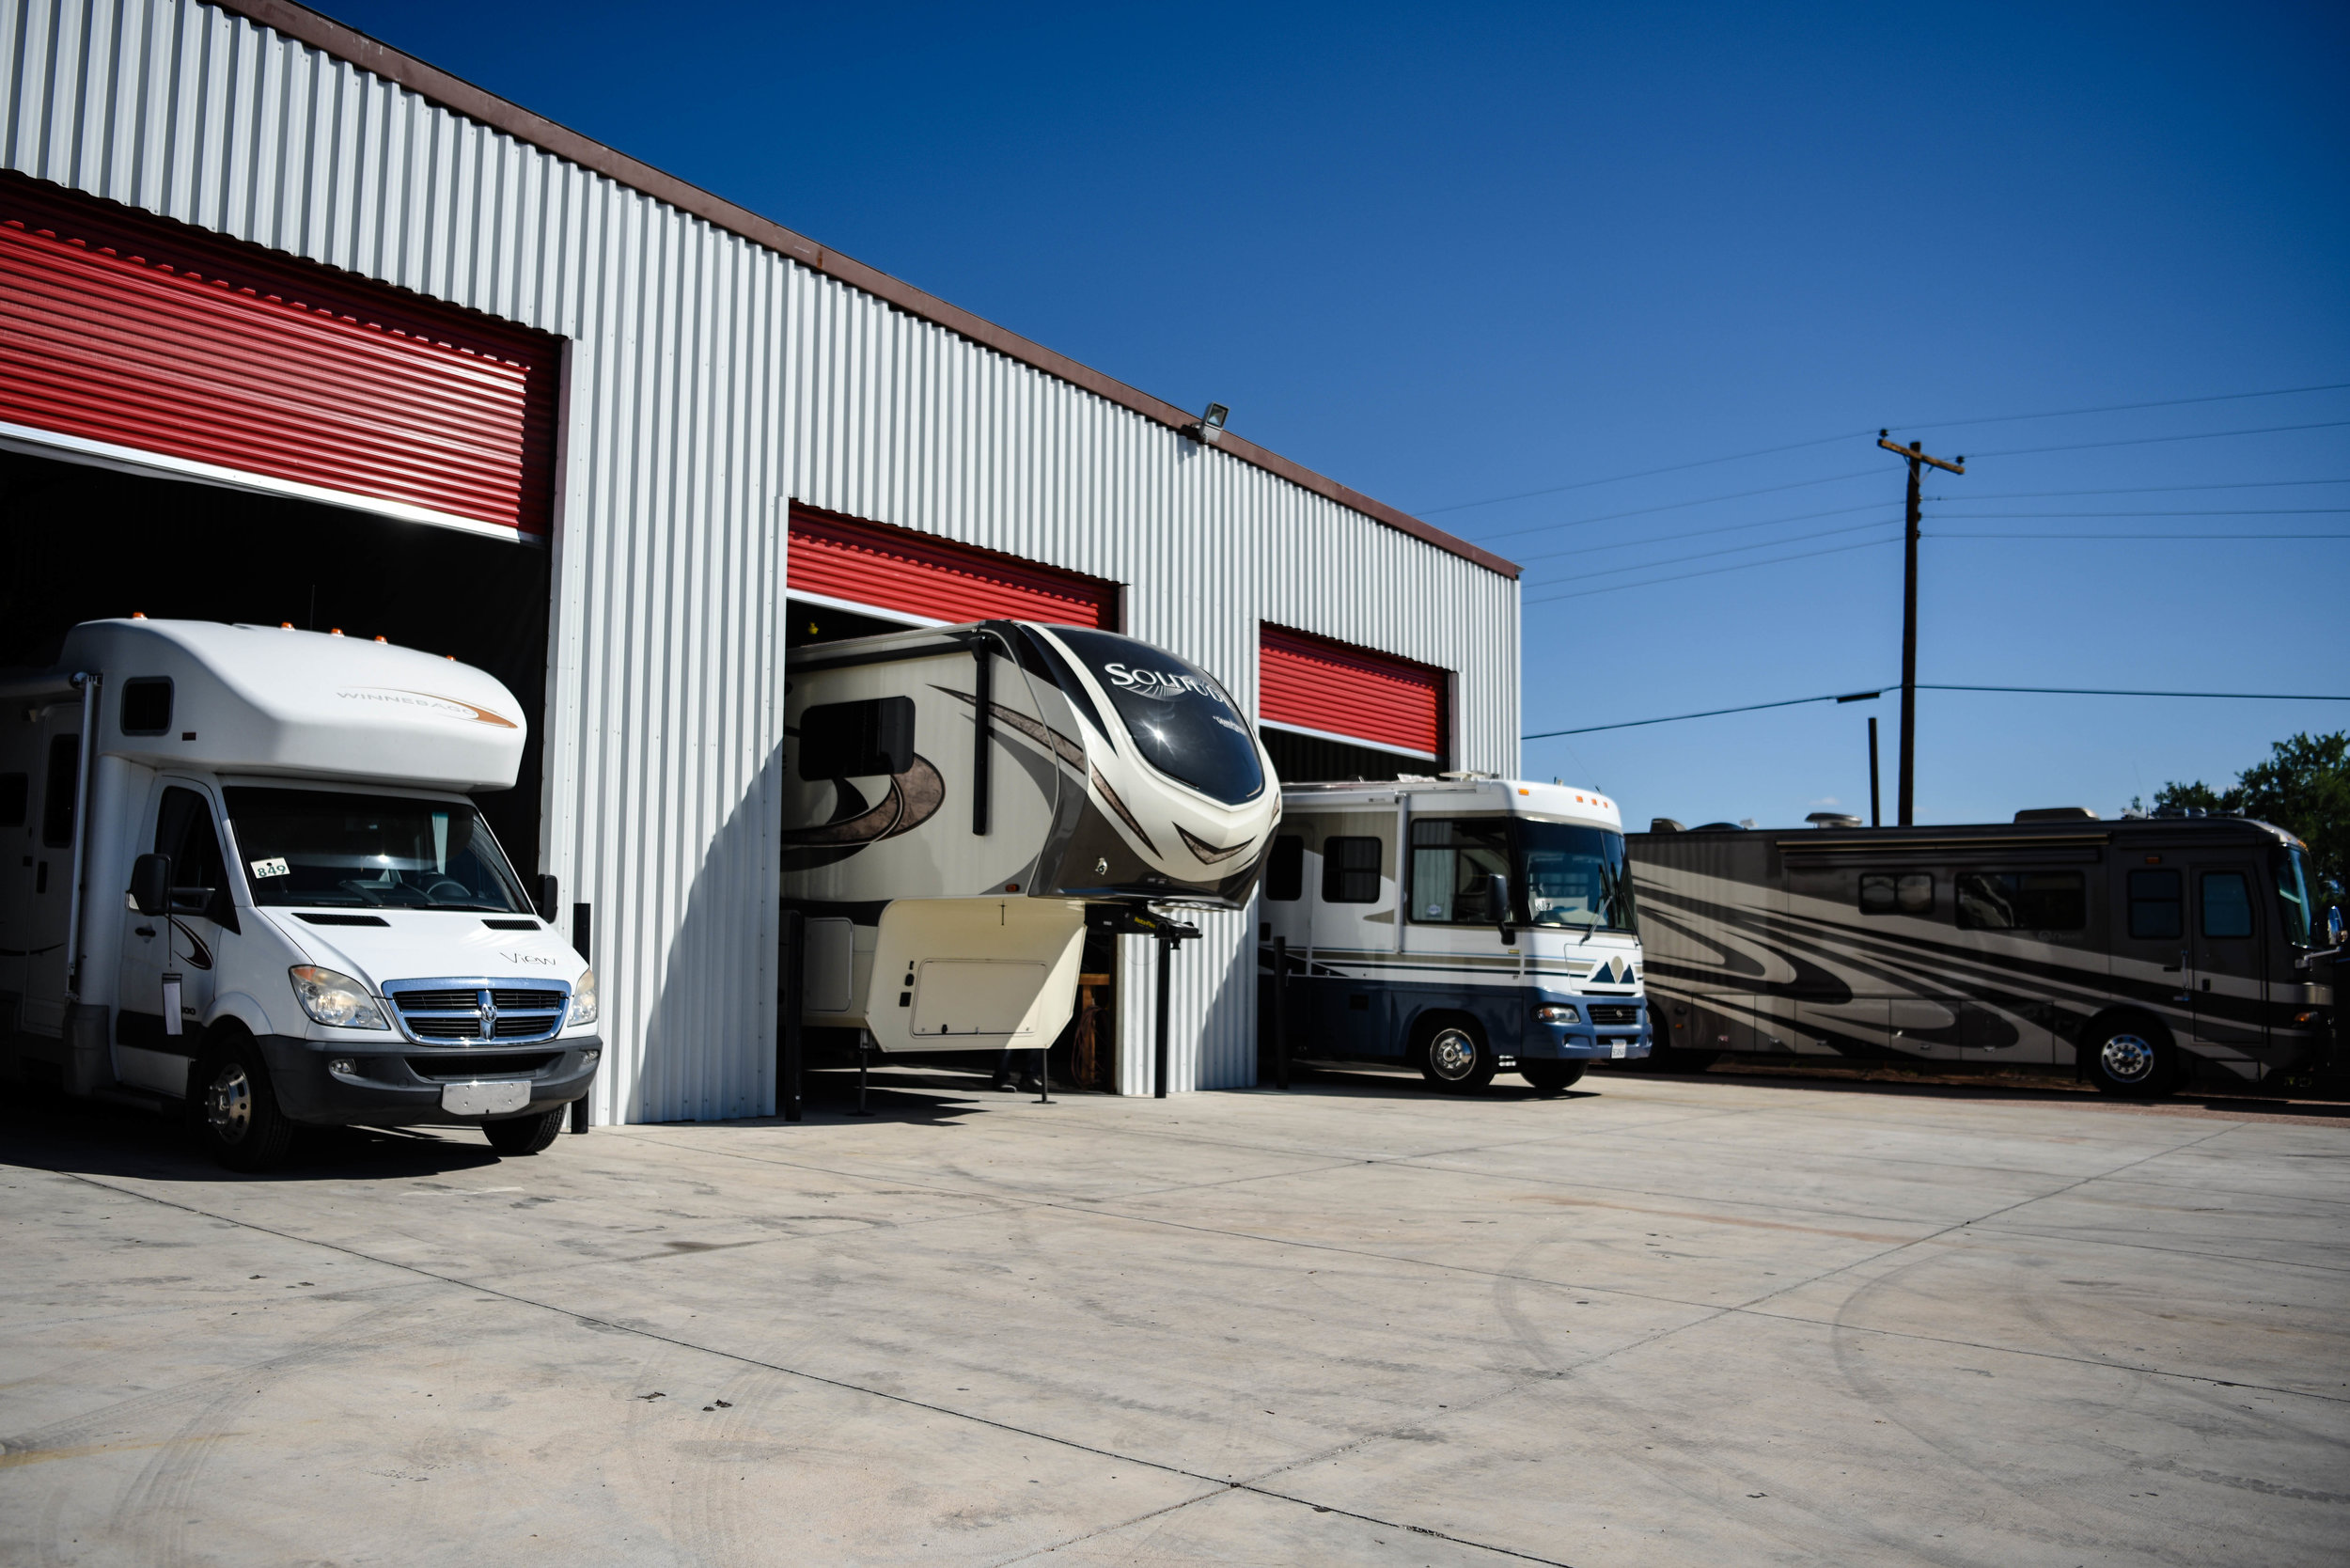 Your RV is Safe & Secure - We Have Built Our 1 acre Facility Safe and Secure.We Want you to be worry free during the repair process, and have gone further by recently adding 15k sqf of enclosed work space' keeping your RV out of the elements during body paint and roofing procedures.